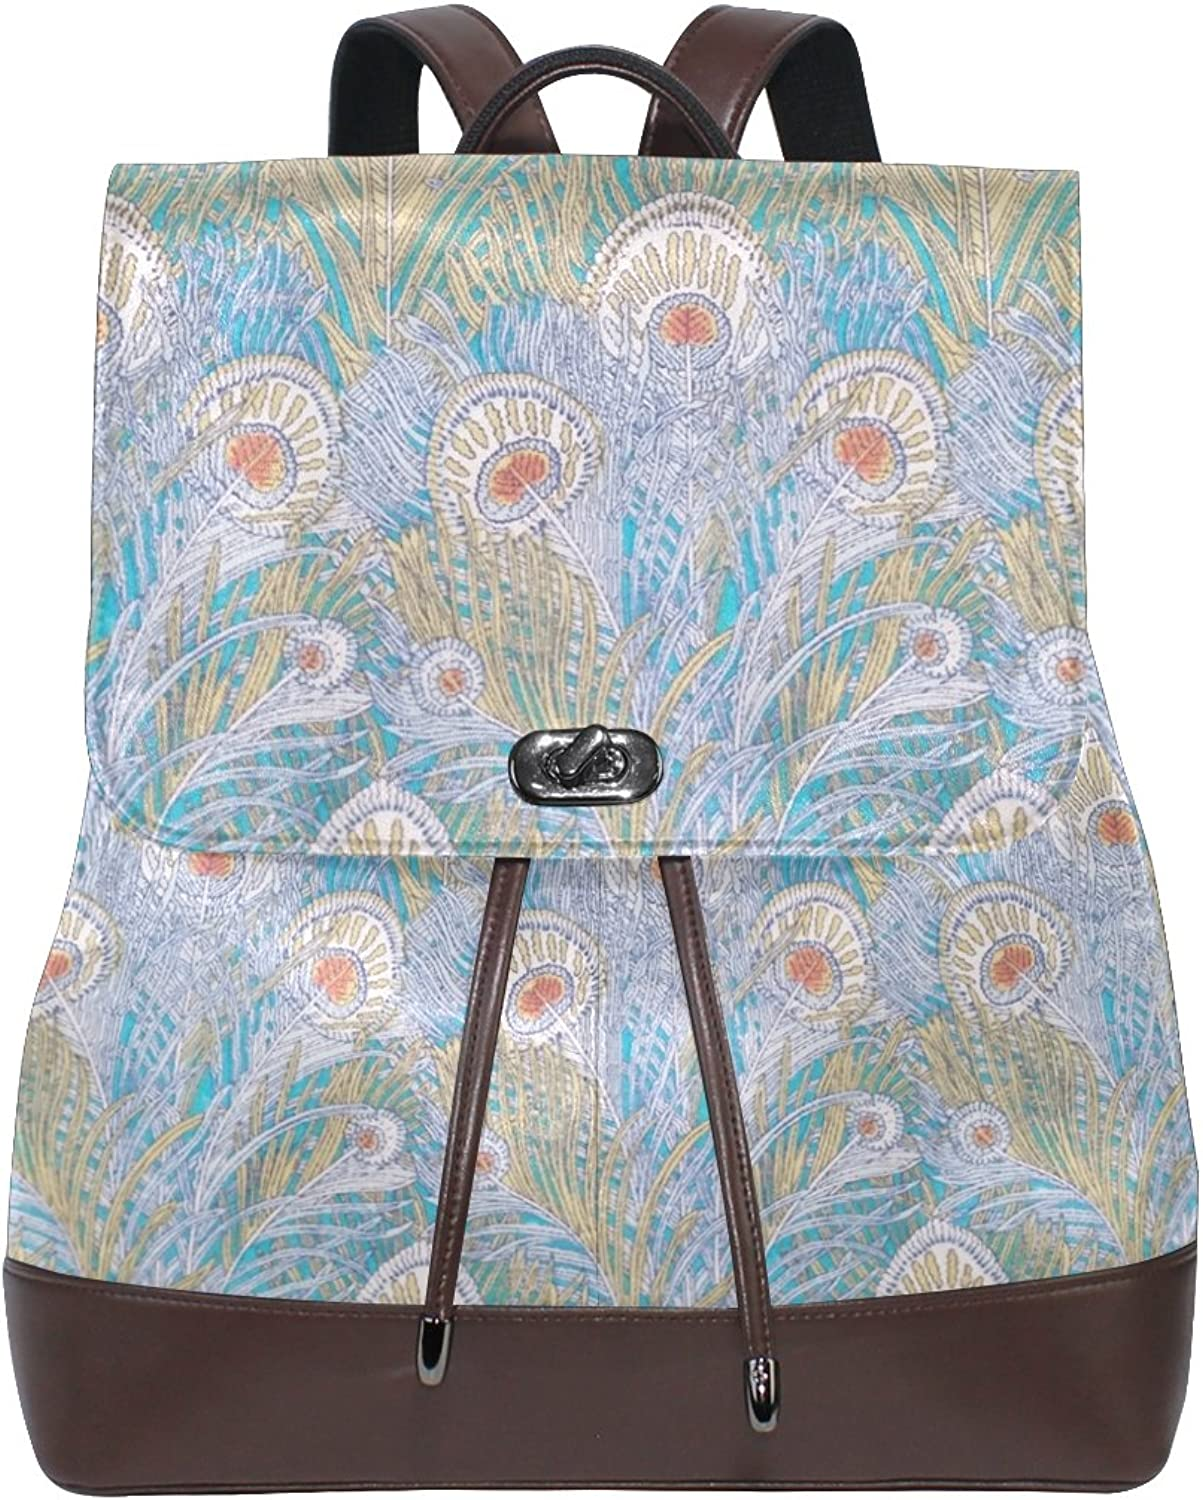 Imobaby Women's Liberty Peacock Feather Print Pu Leather Backpack Purse Ladies Casual Shoulder Bag School Bag for Girls,Ty1